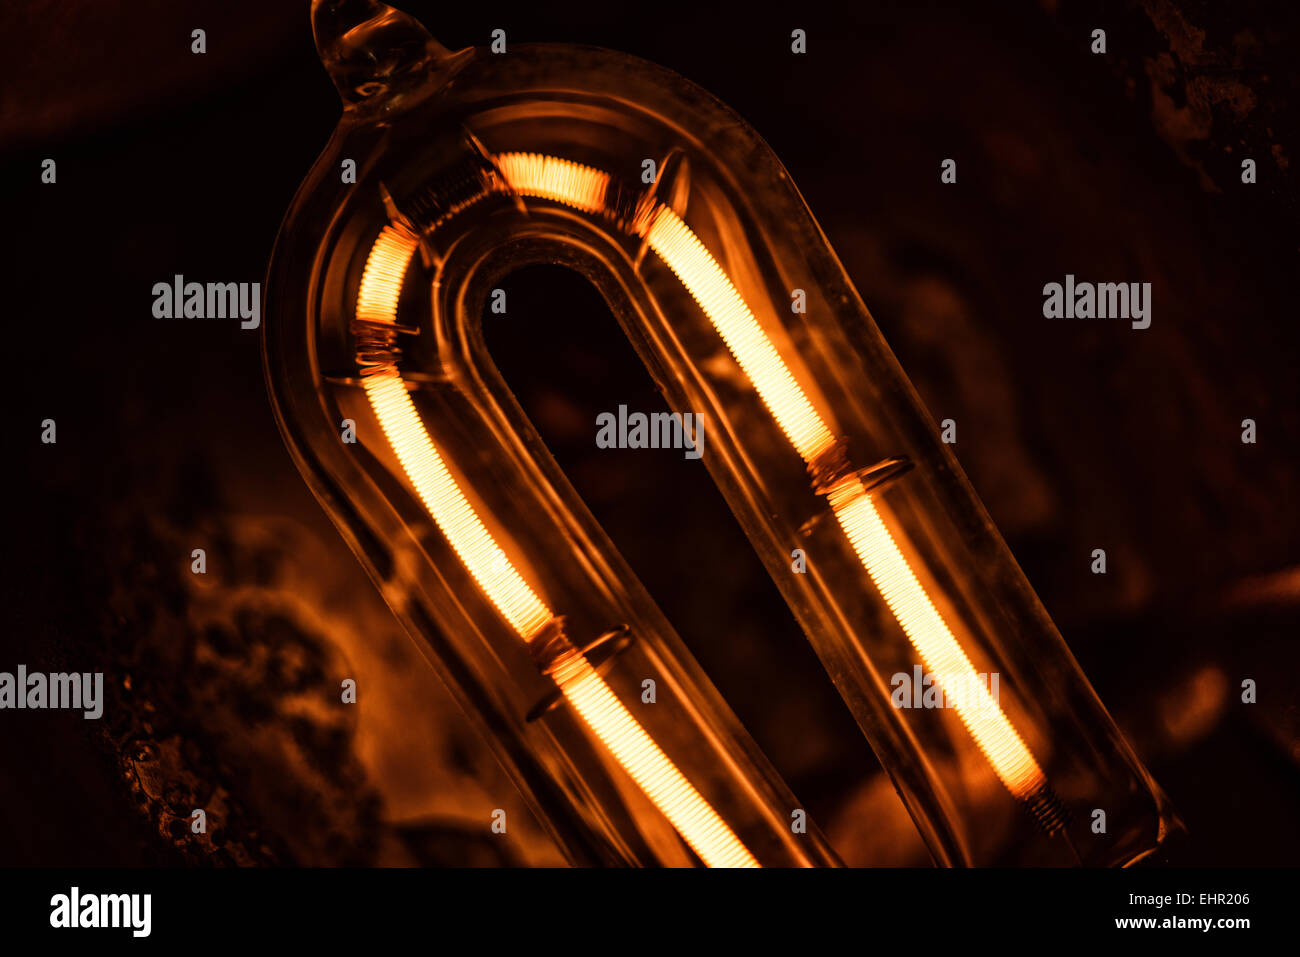 glowing filament of a 1000 quartz halogen bulb with flaked metal and heat damage to the reflector and heat dispenser - Stock Image